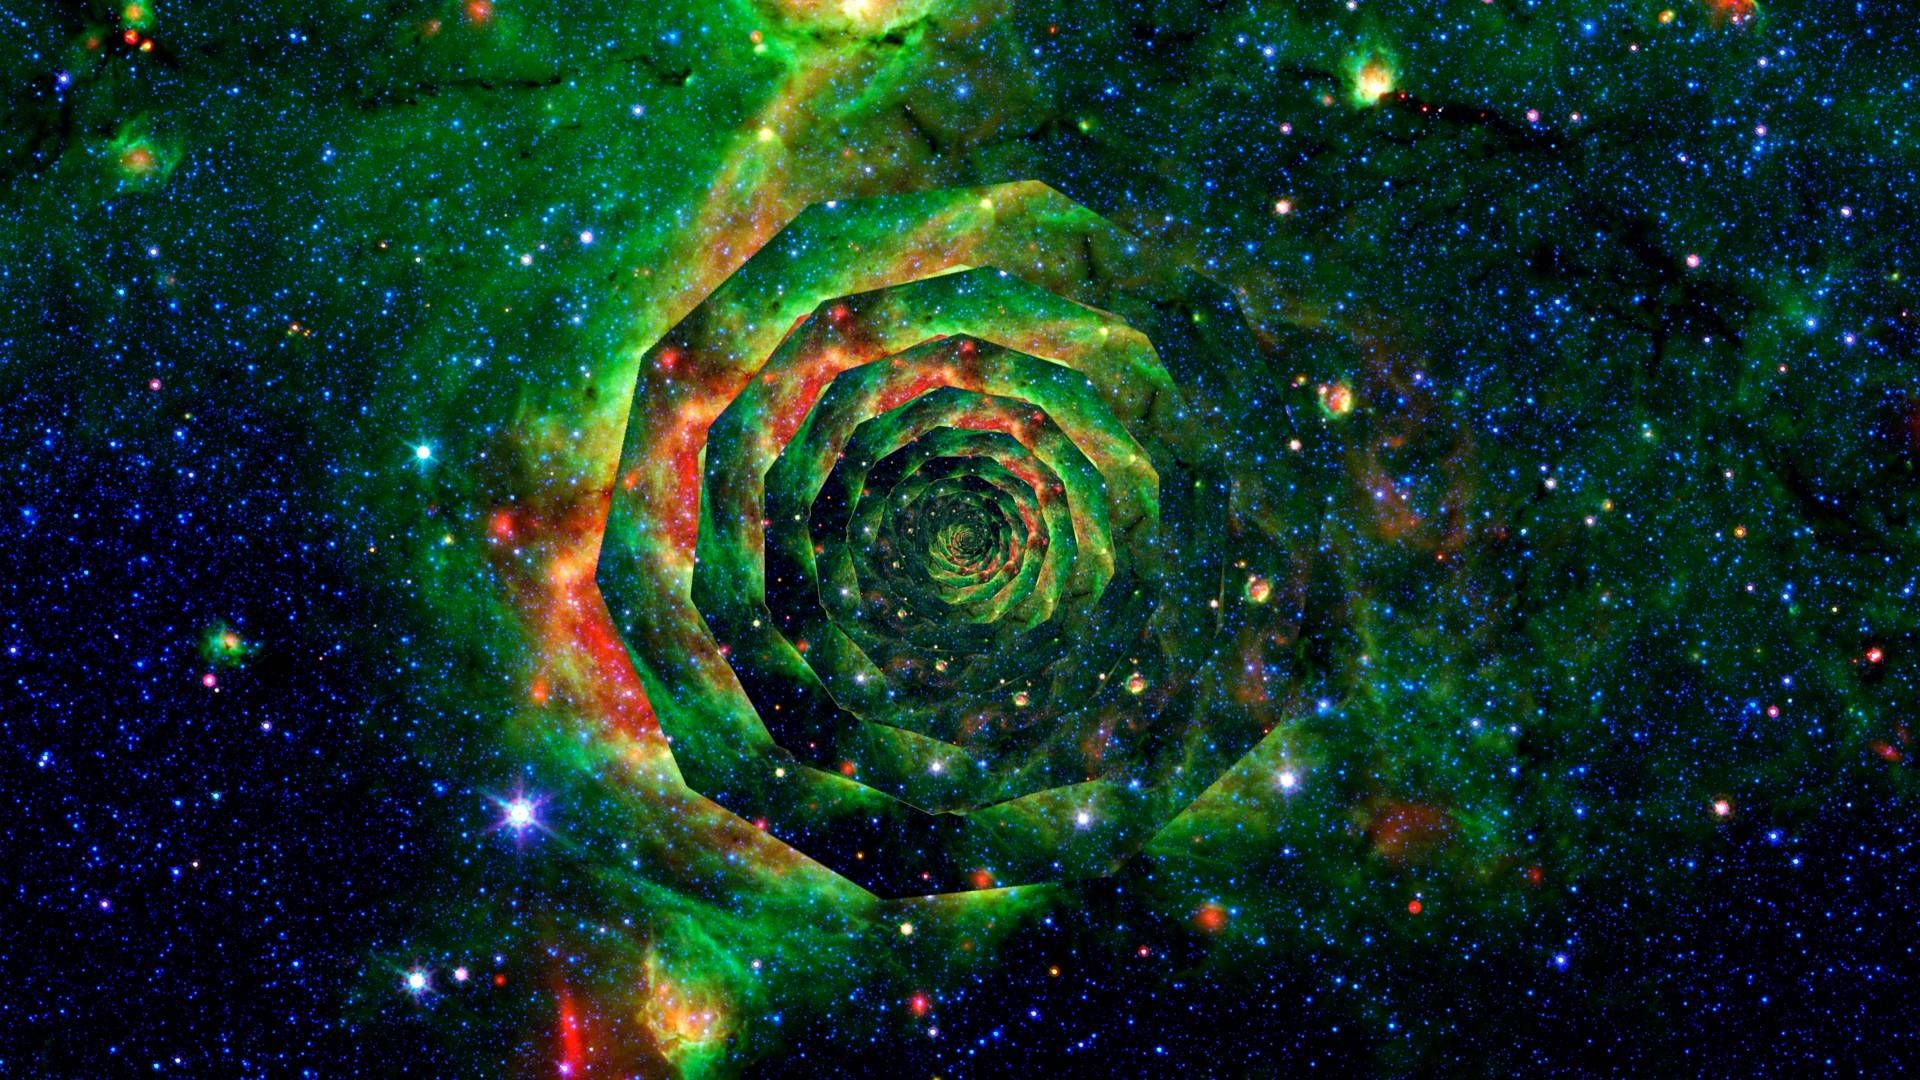 500 Trippy Wallpapers Psychedelic Backgrounds Hd Bdvdq1 Jpg 1920 1080 Trippy Wallpaper Trippy Pictures Trippy Backgrounds